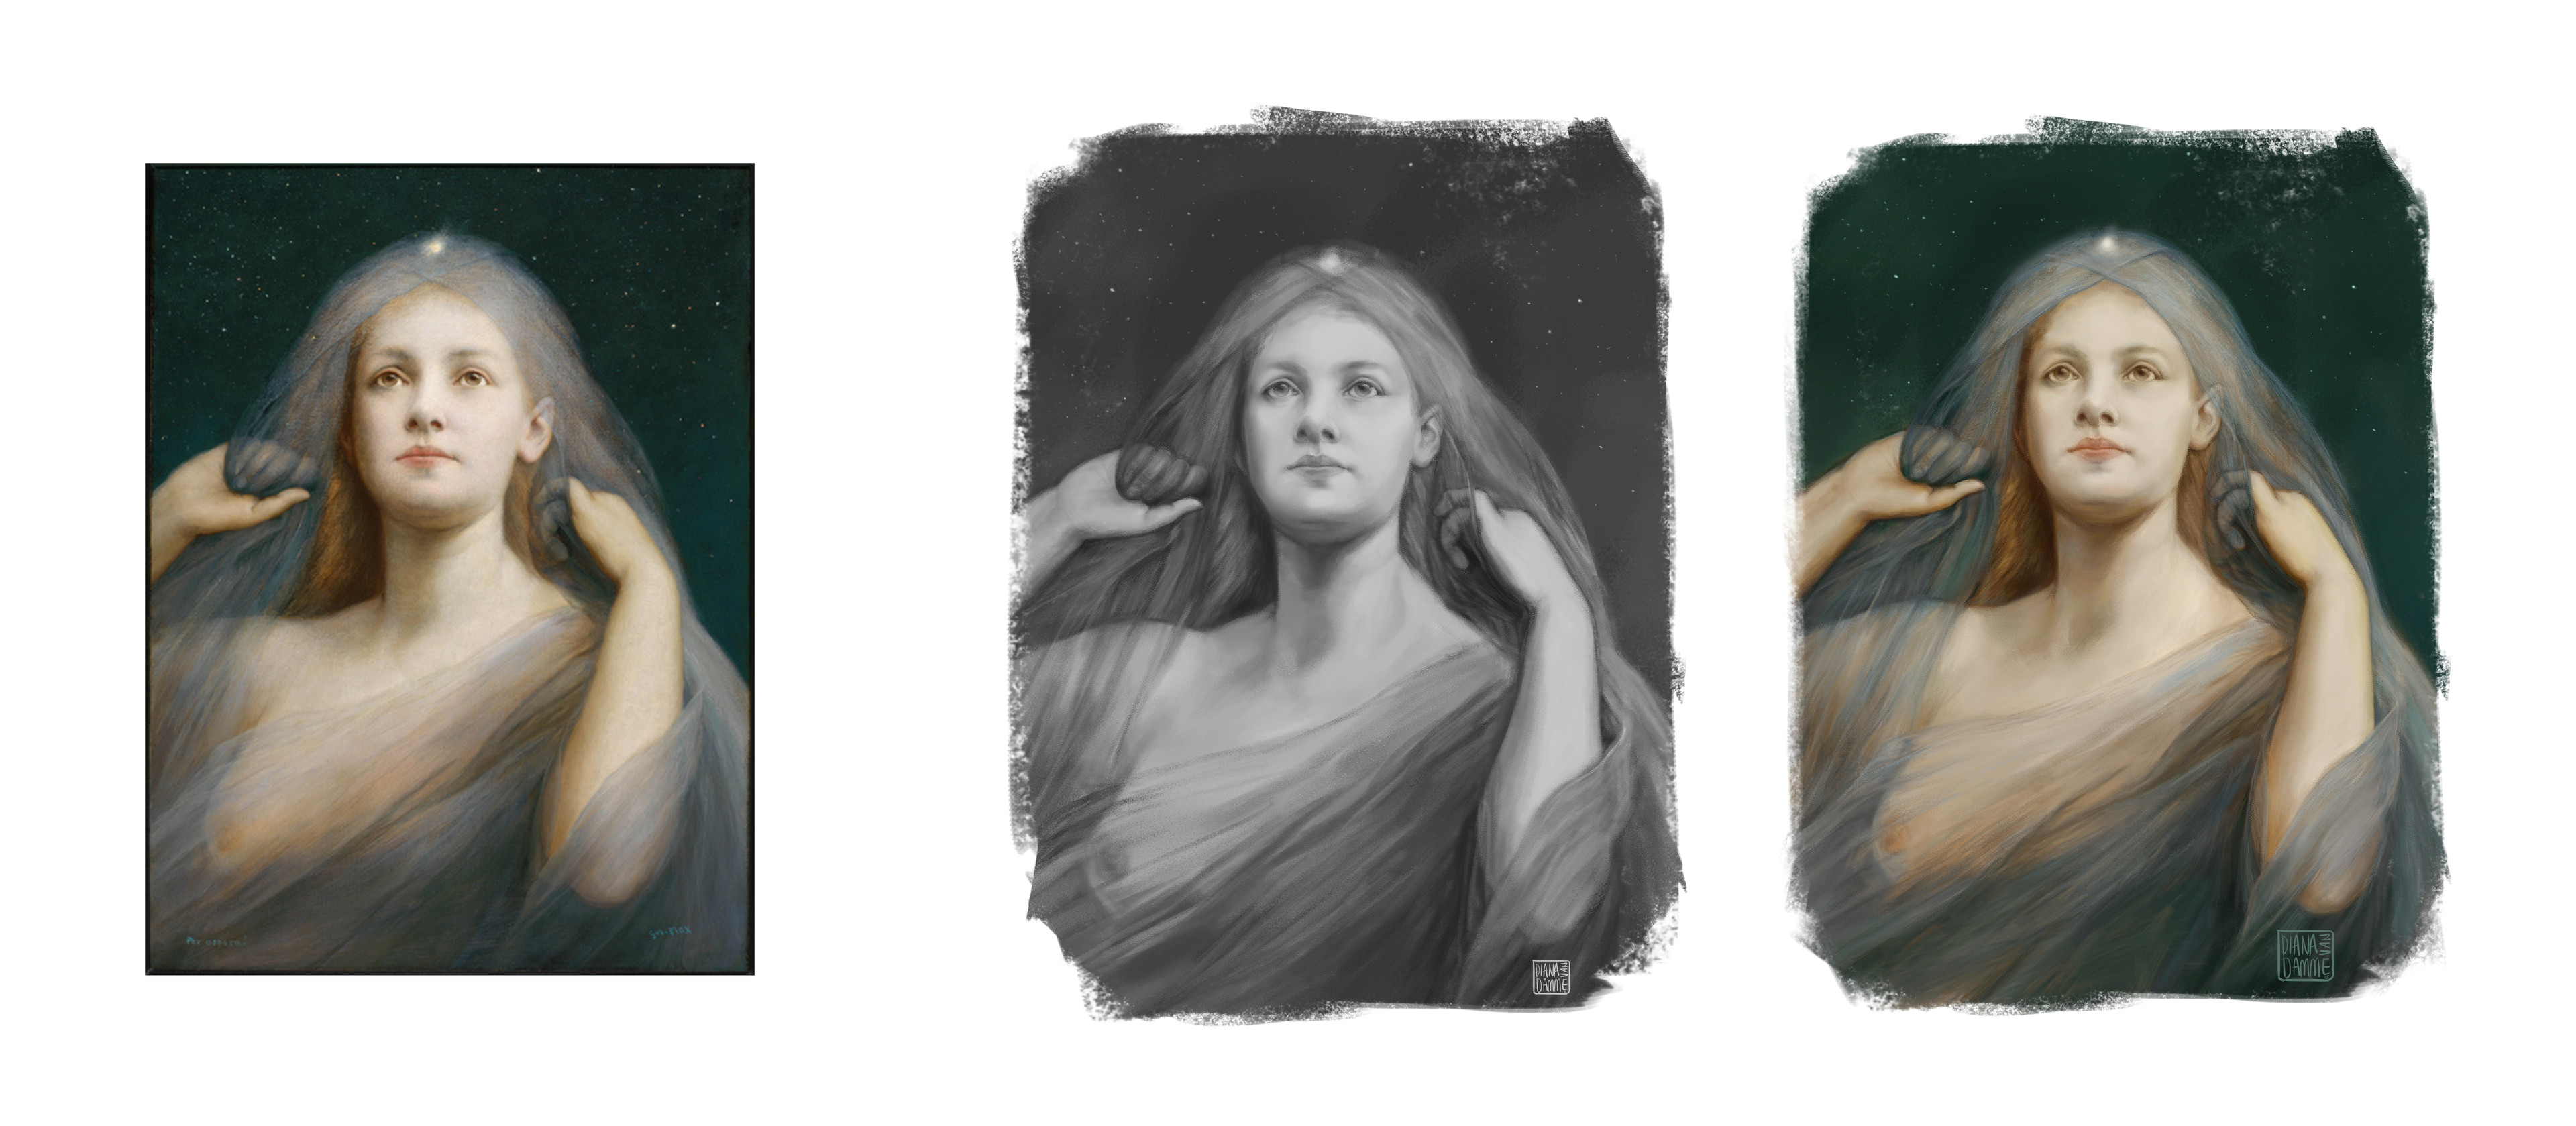 Left: Original by Gabriel Von Max, Center: My grayscale study, Right: My color study